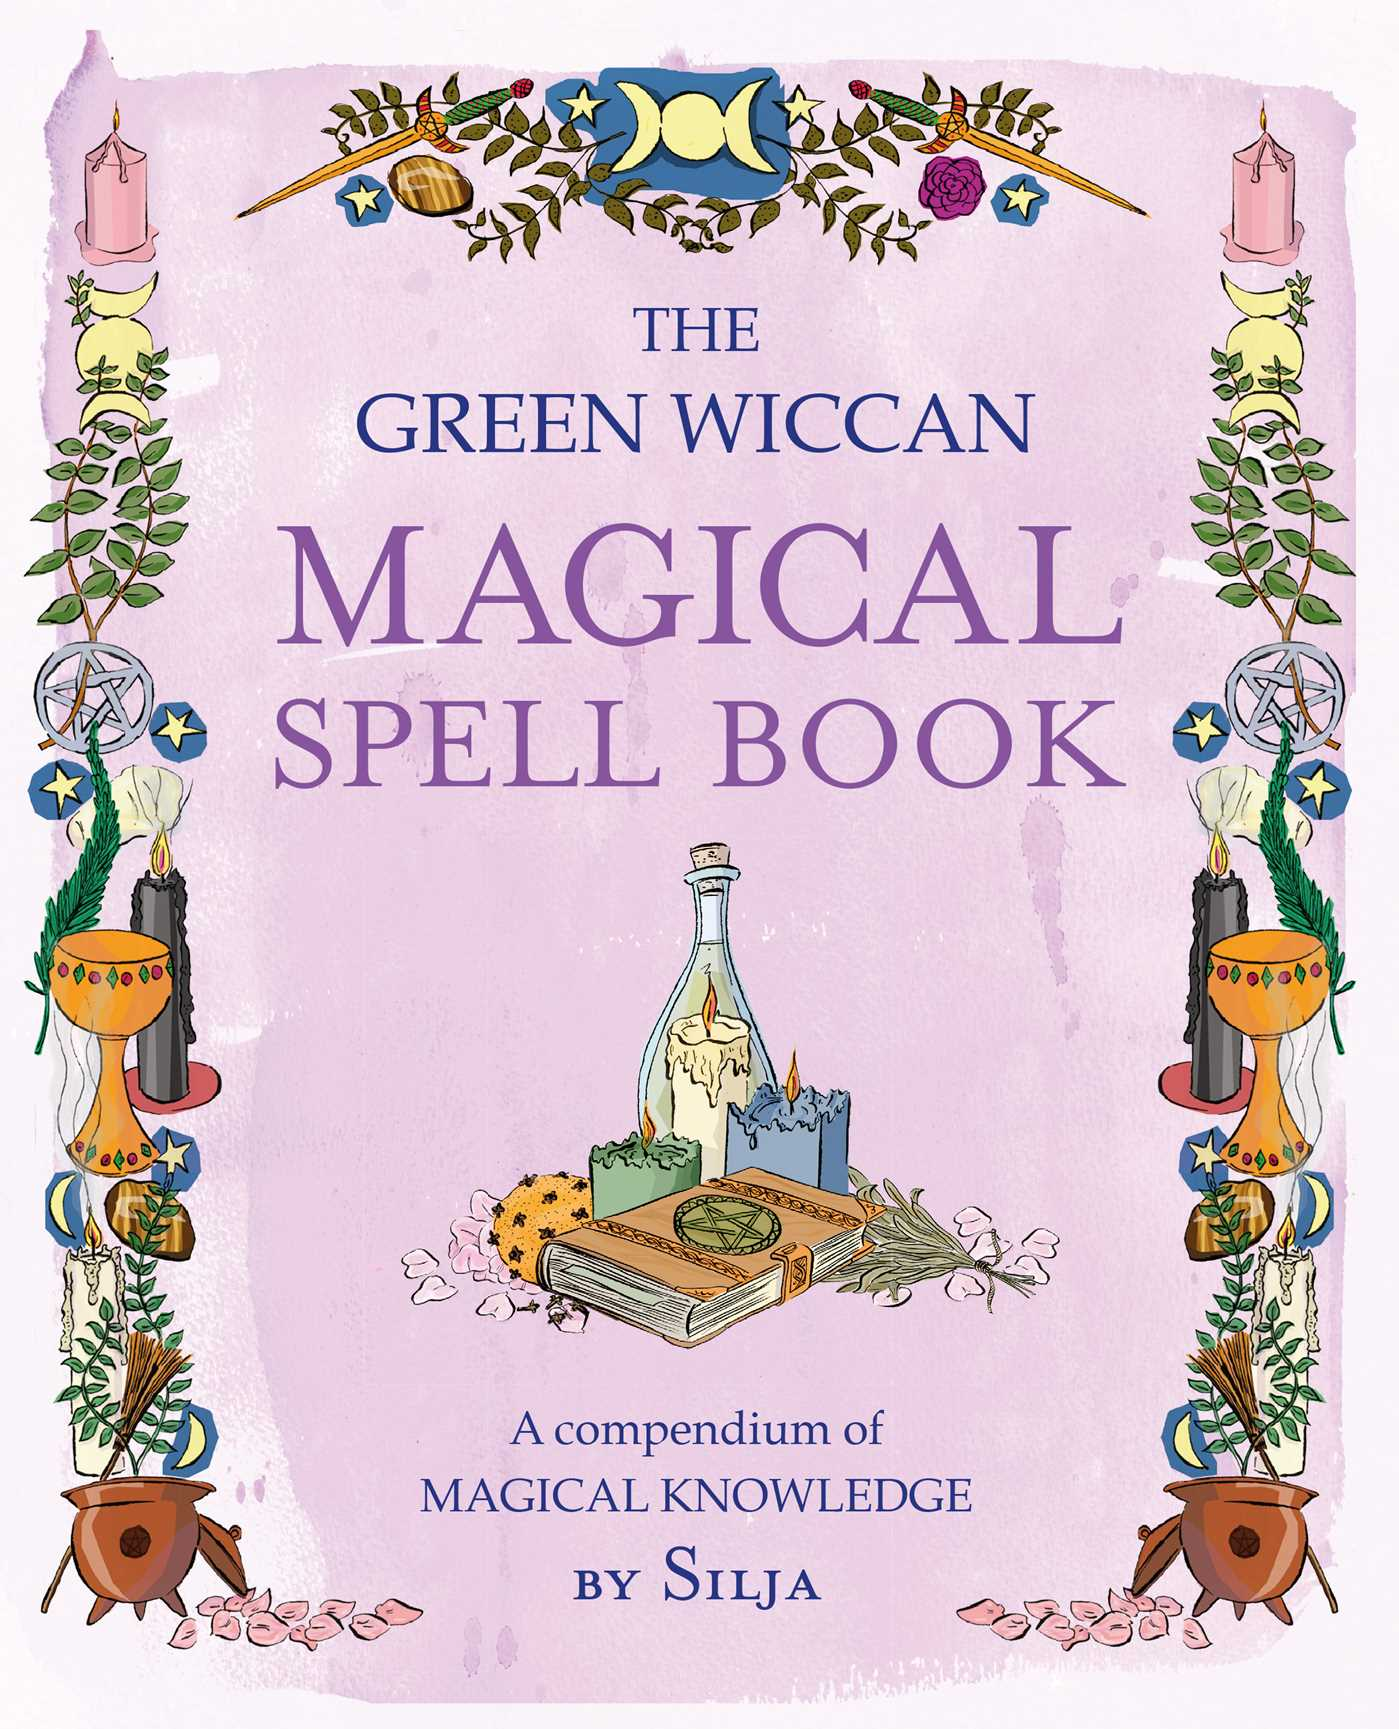 The Green Wiccan Magical Spell Book | Book by Silja